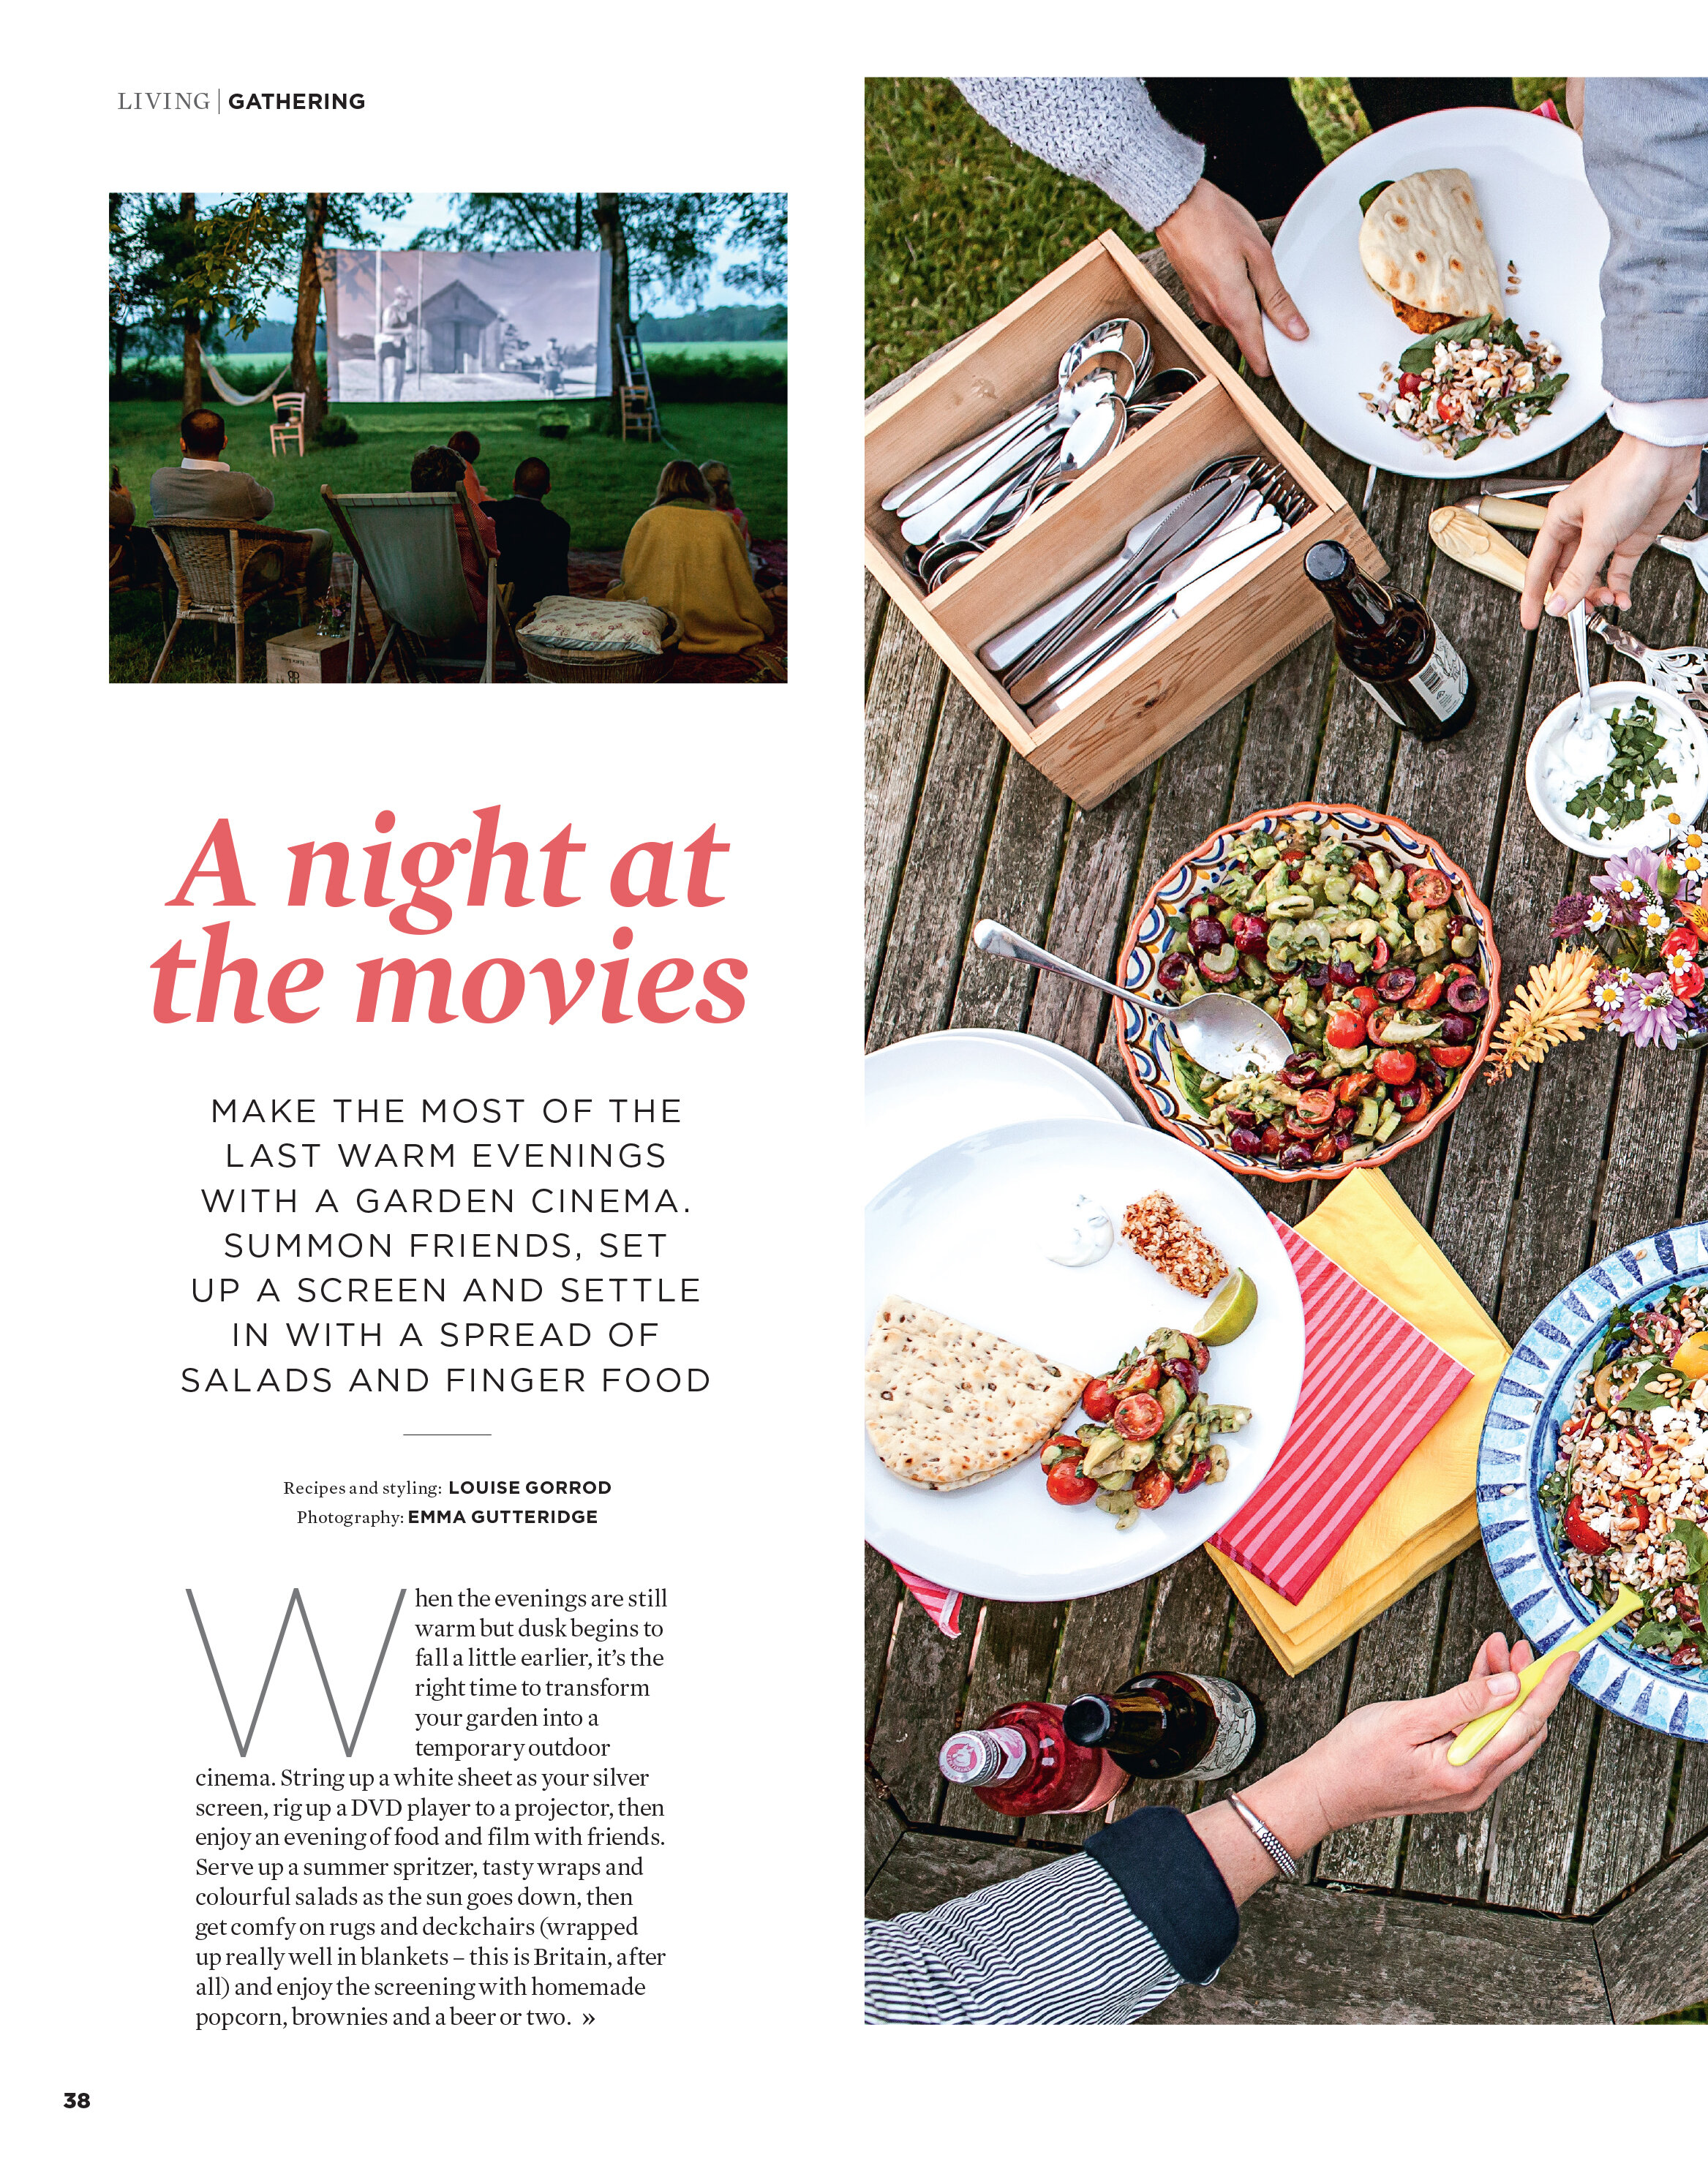 The Simple Things A Night at the Movies Gathering -